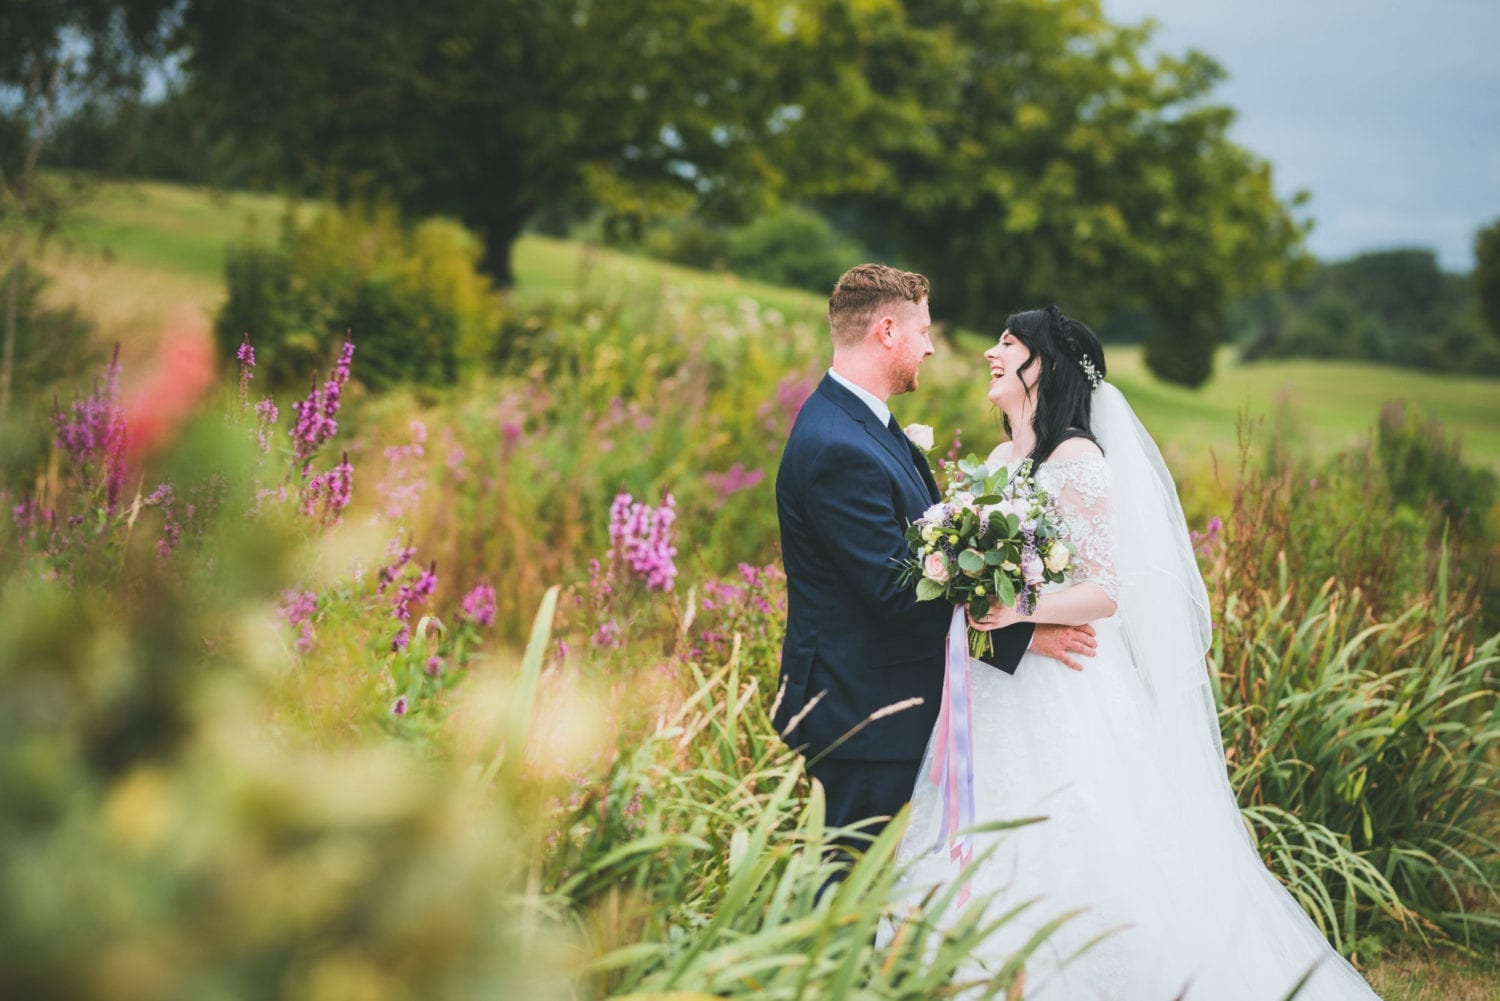 Wedding couple smiling in nature - outdoor wedding - Cottrell Park